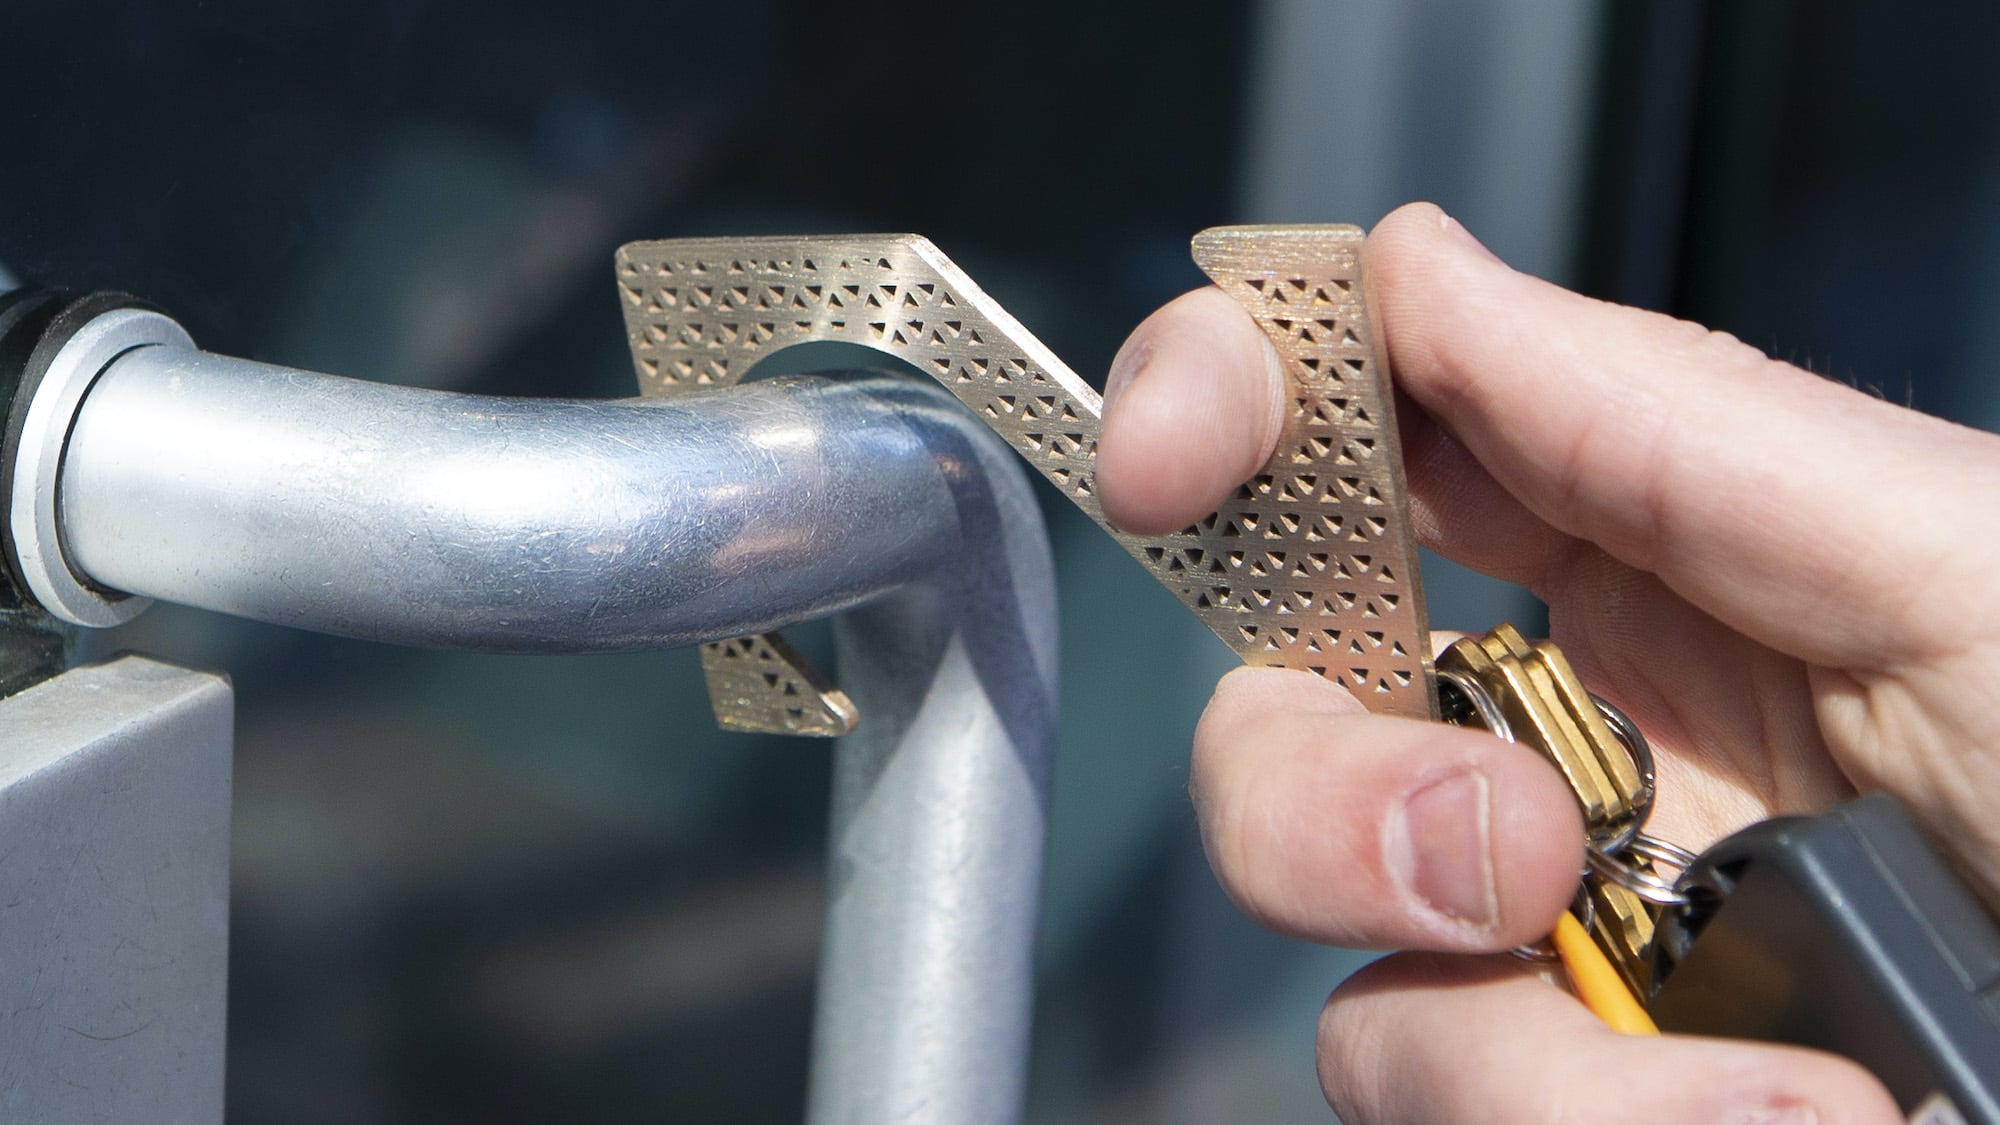 SANITAS Antibacterial Copper Door Opener keeps you free of germs while going about your day